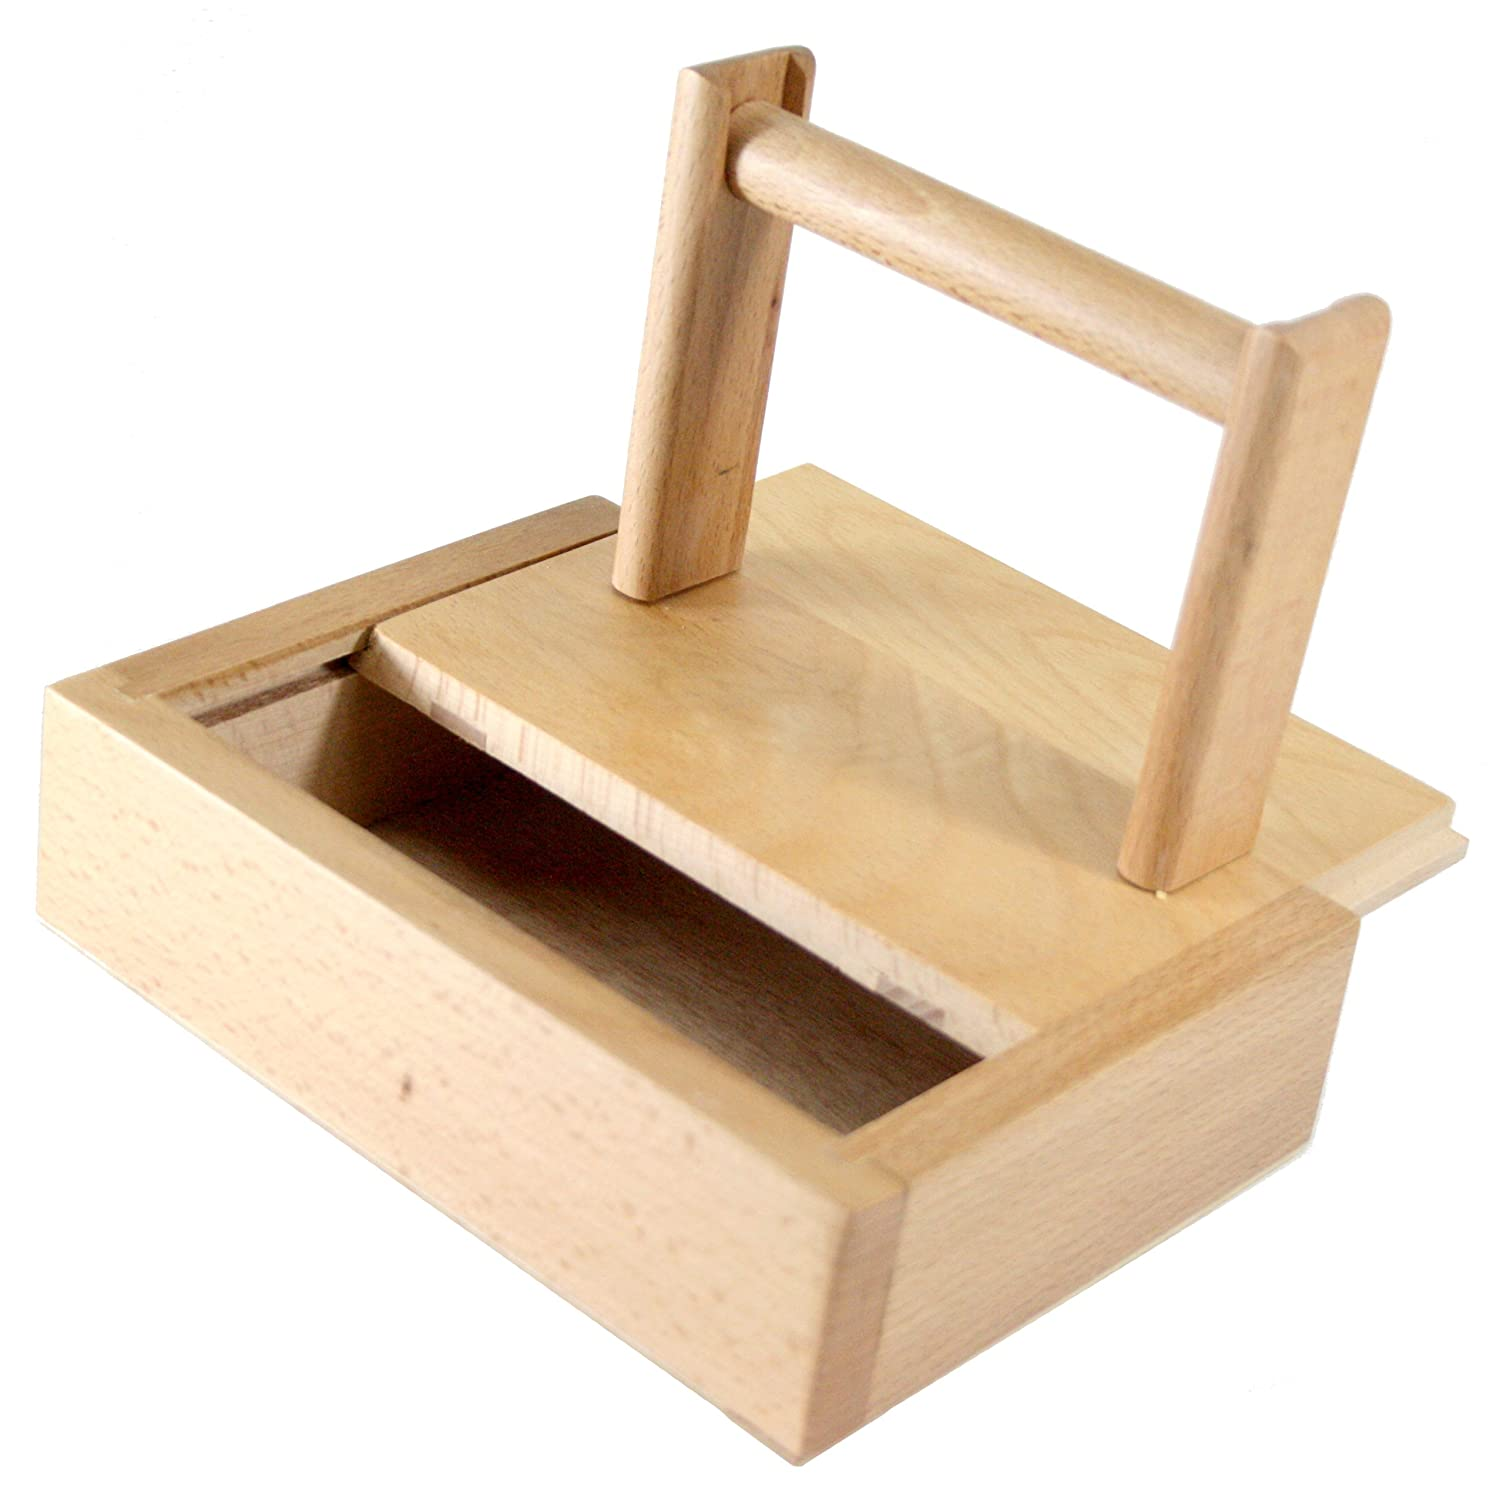 Wood Yarn Winder Holder Spinning with Storage (5.5x7.5 Box) Sierra Pacific Crafts